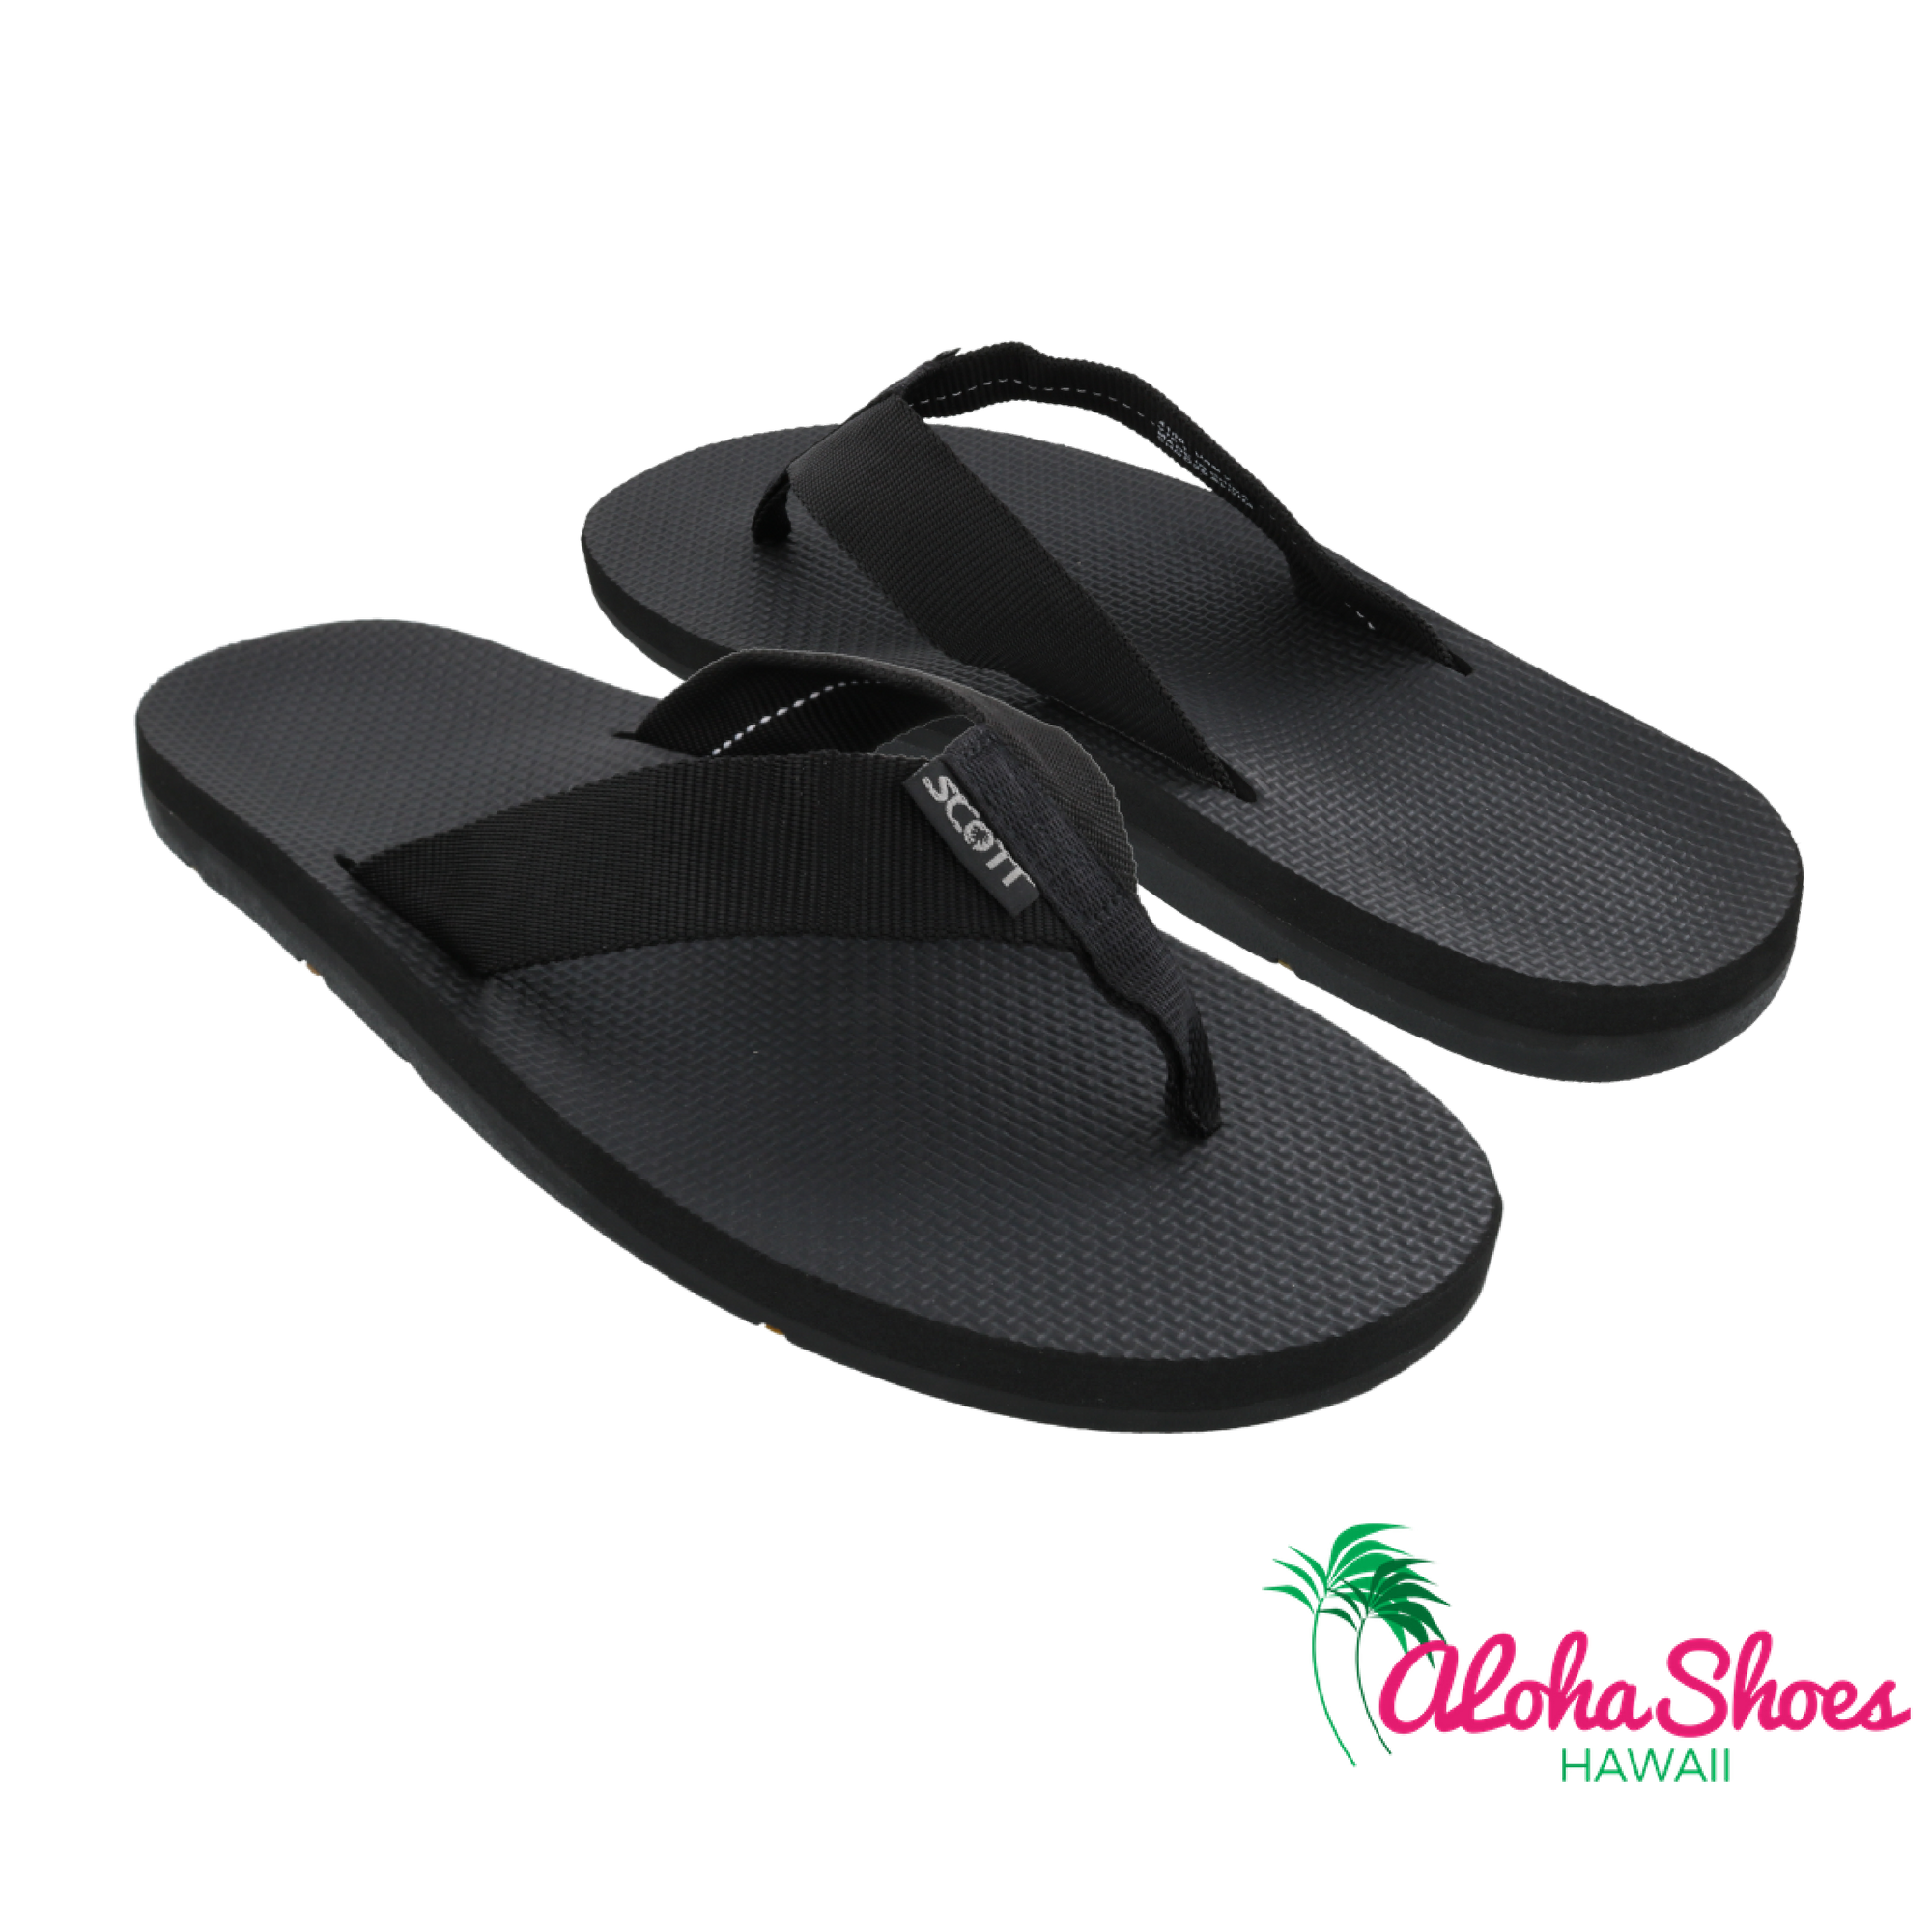 662d3a3929031 Scott Makaha Beach Sandals March Sale